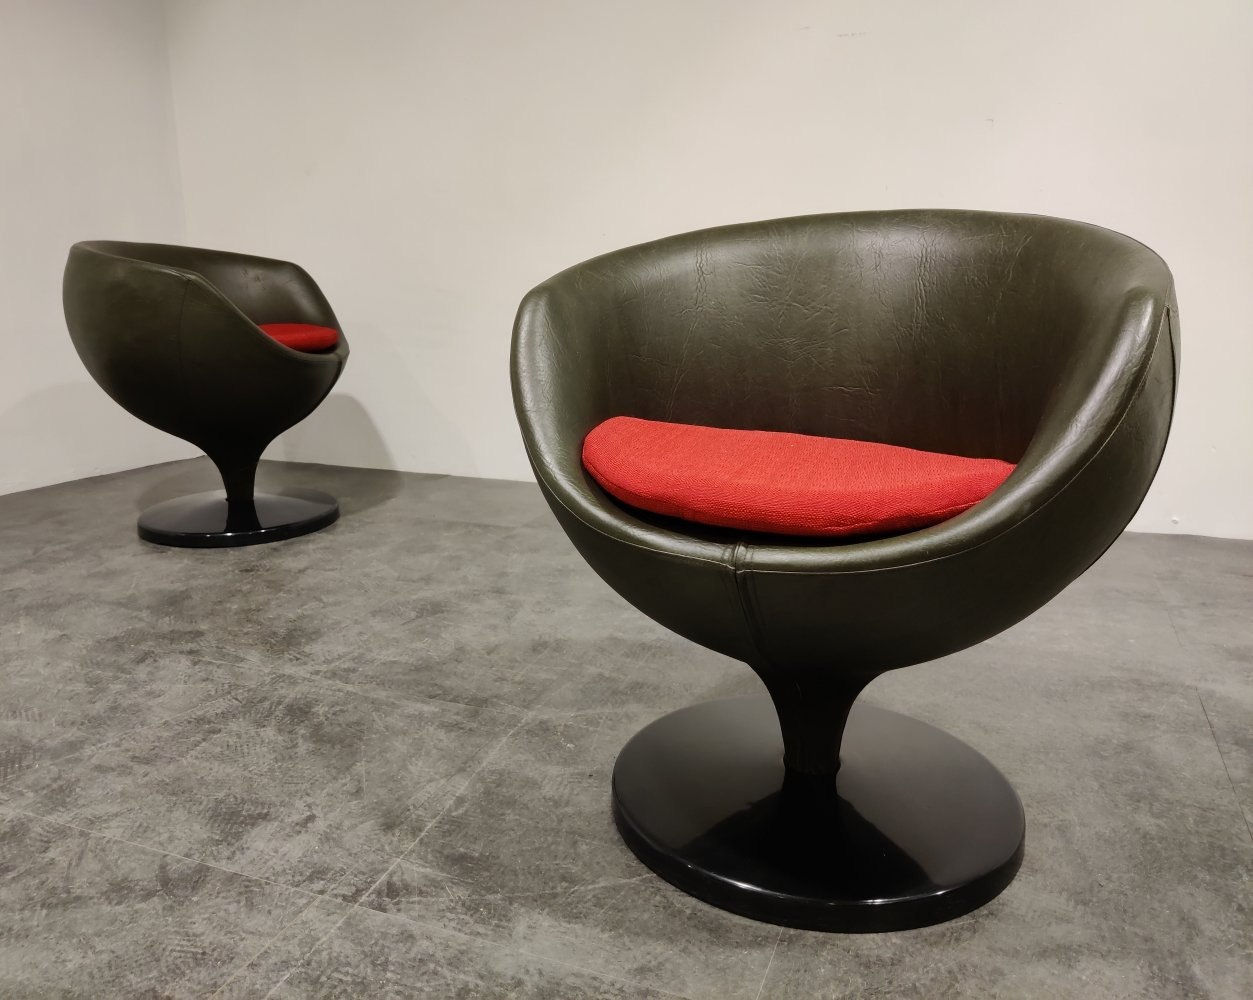 Pair of Luna lounge chairs by Pierre Guariche for Meurop, 1960s